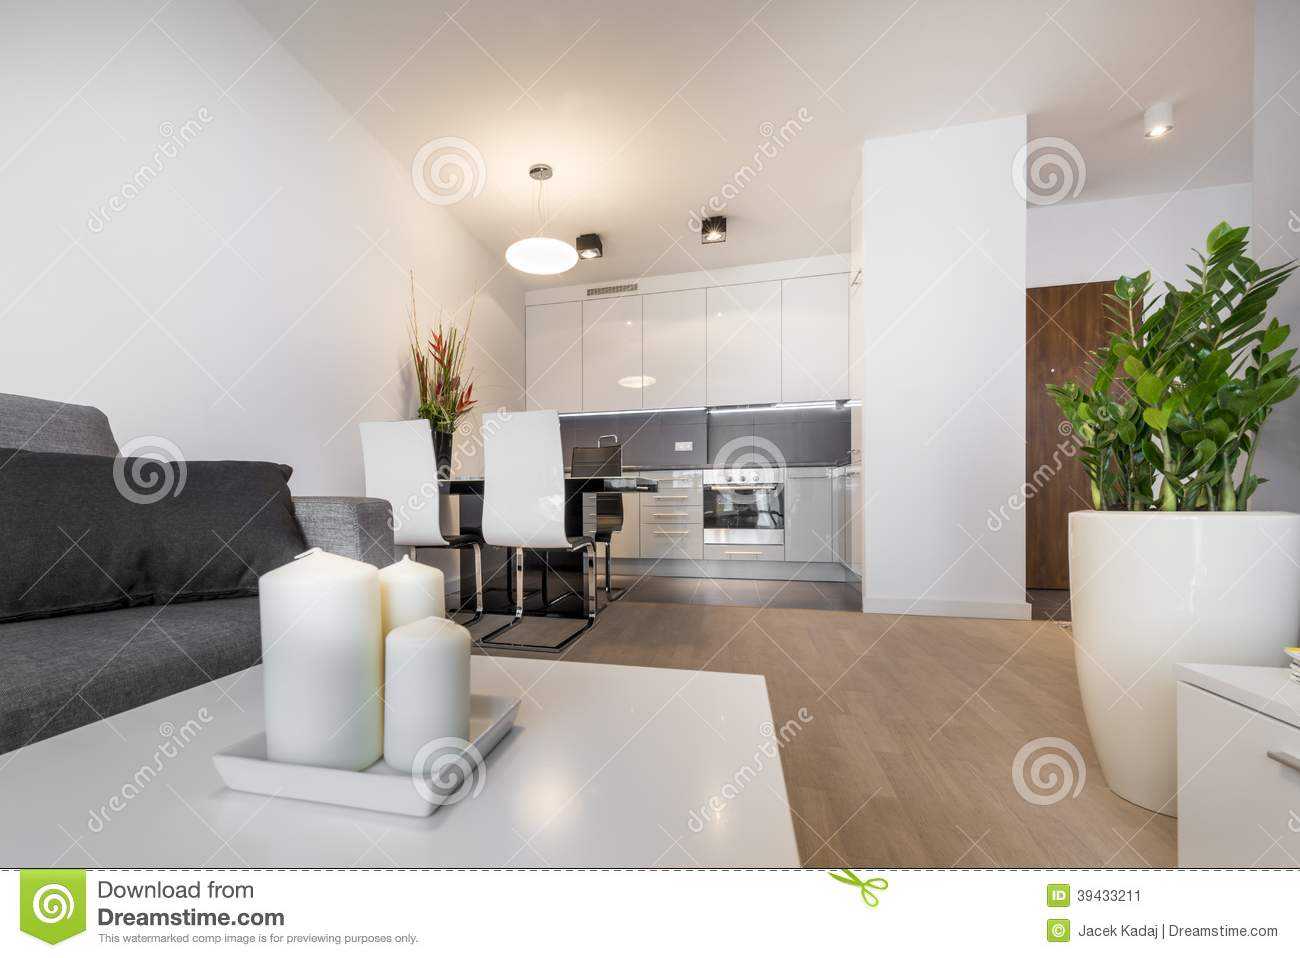 Modern luxury living room interior design stock image for Modern zen interior design living room